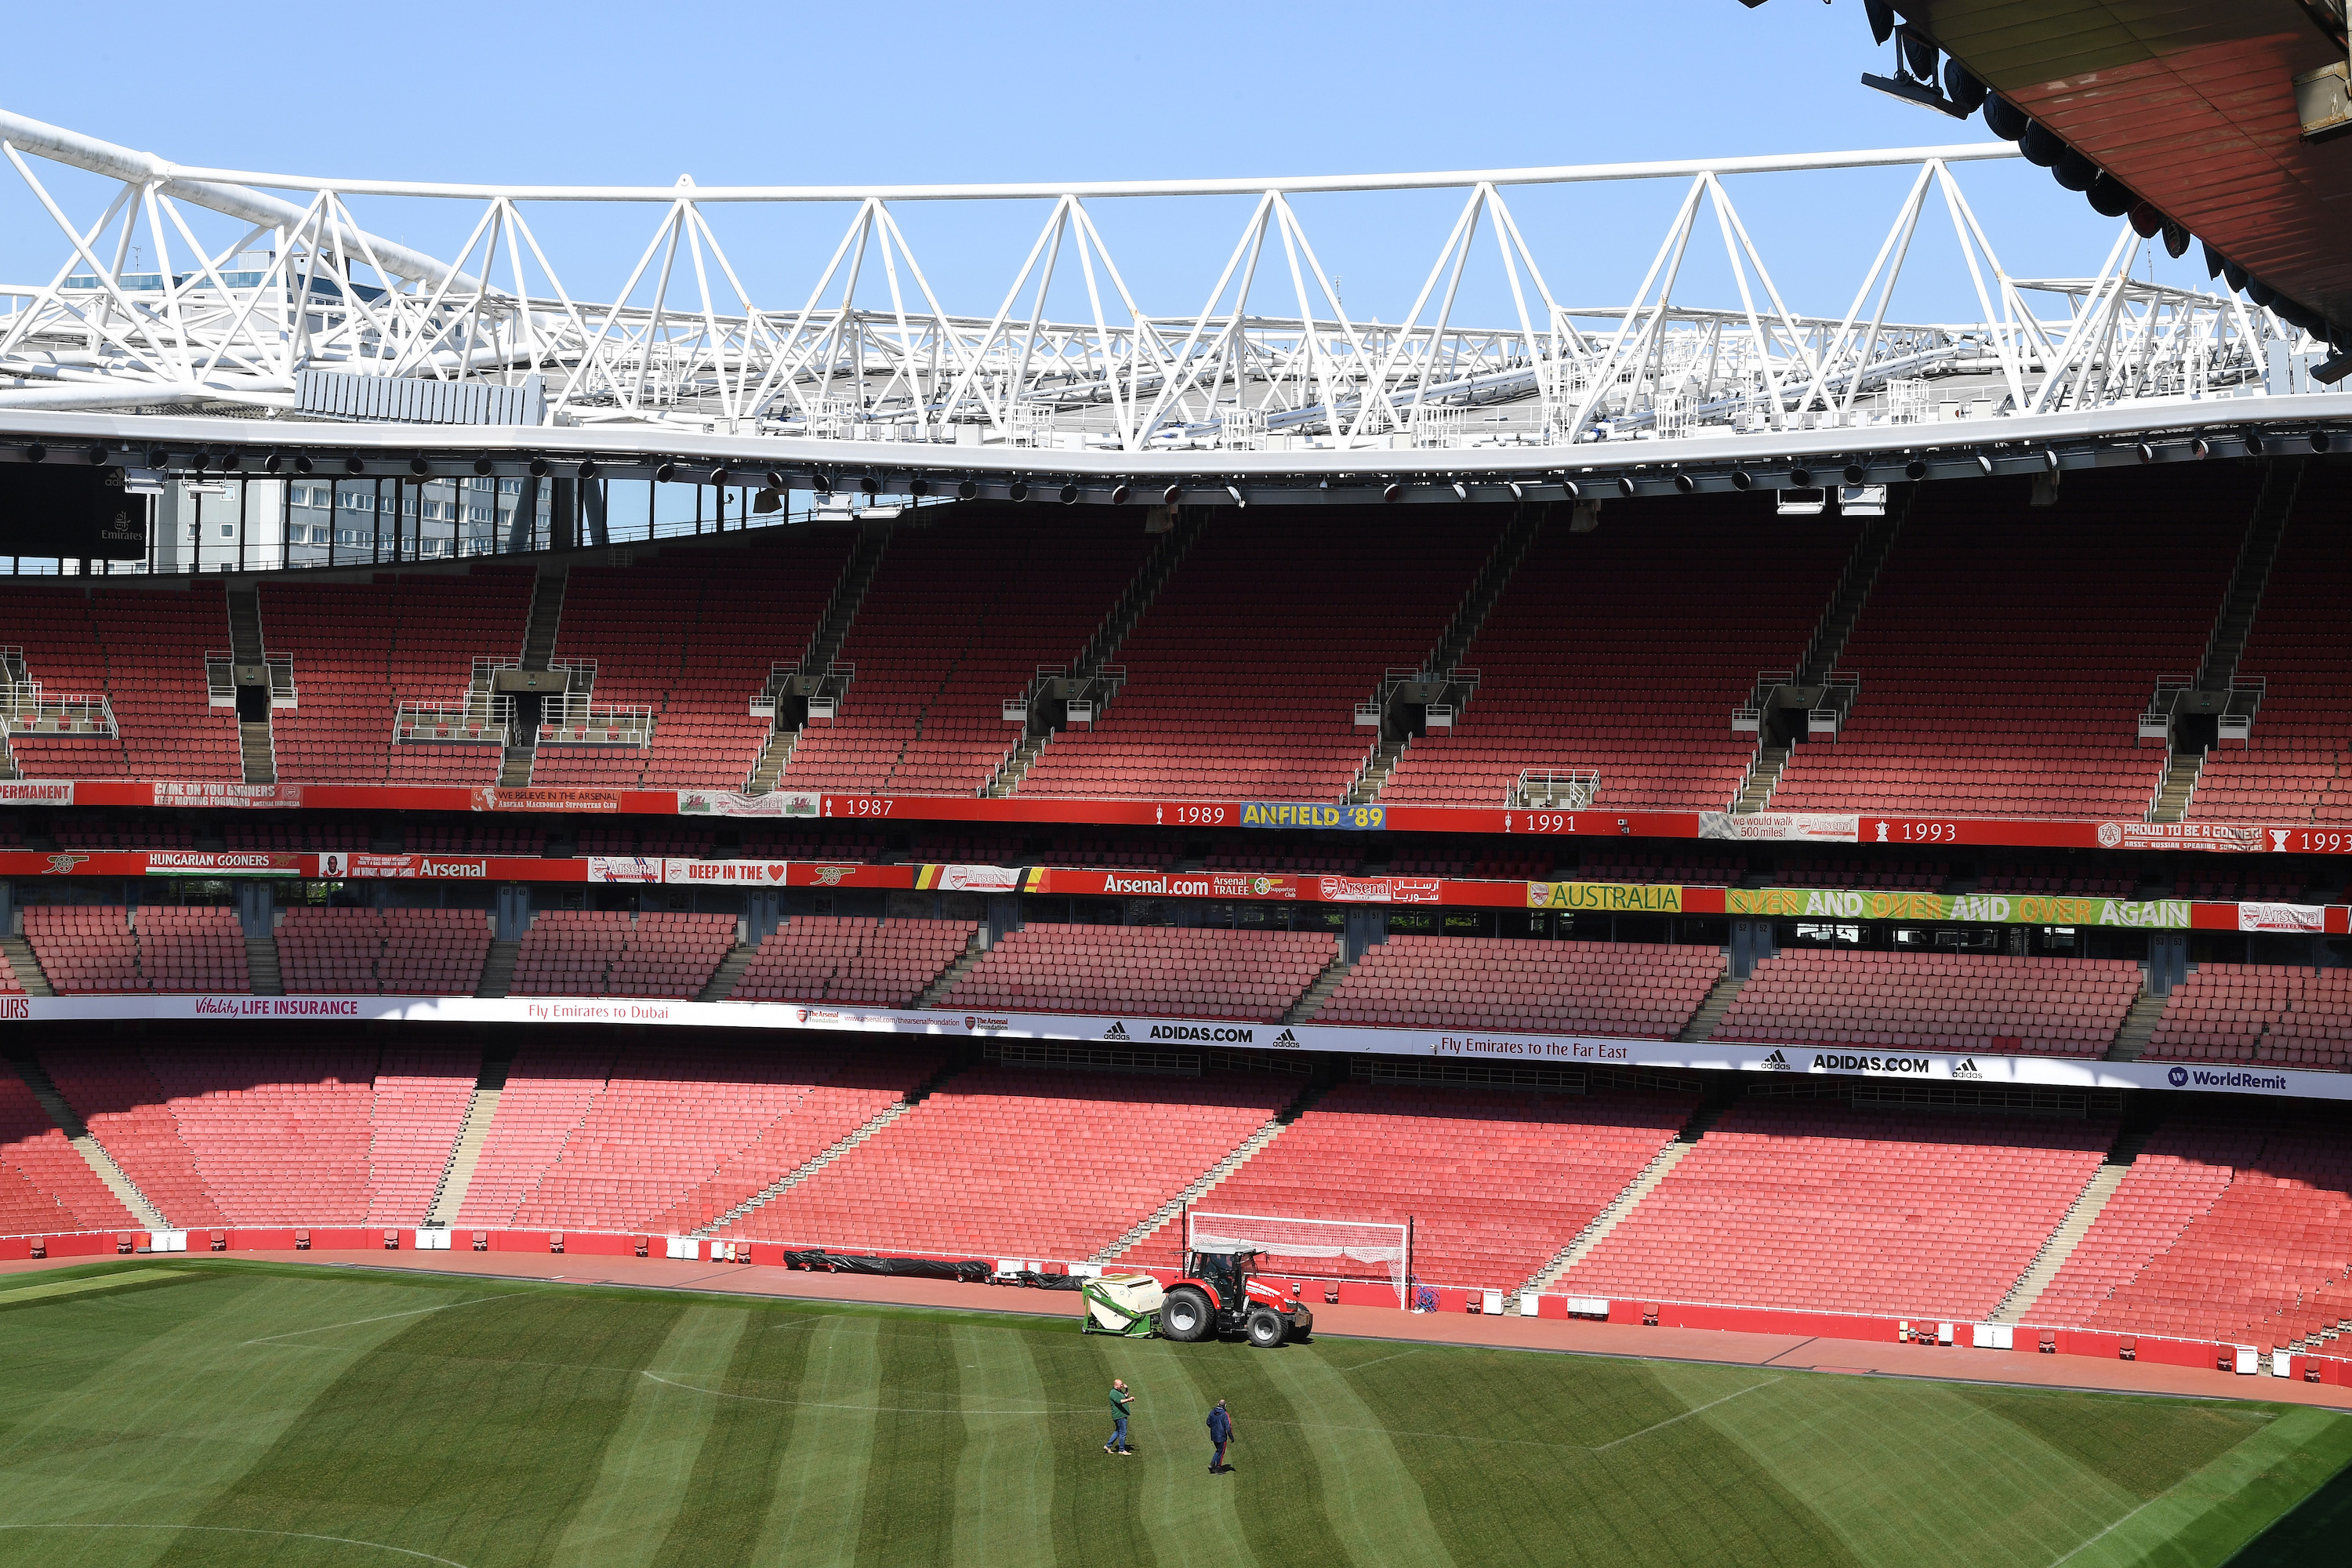 Ground staff work on the pitch at the Emirates Stadium on April 20, 2020 in London, England.